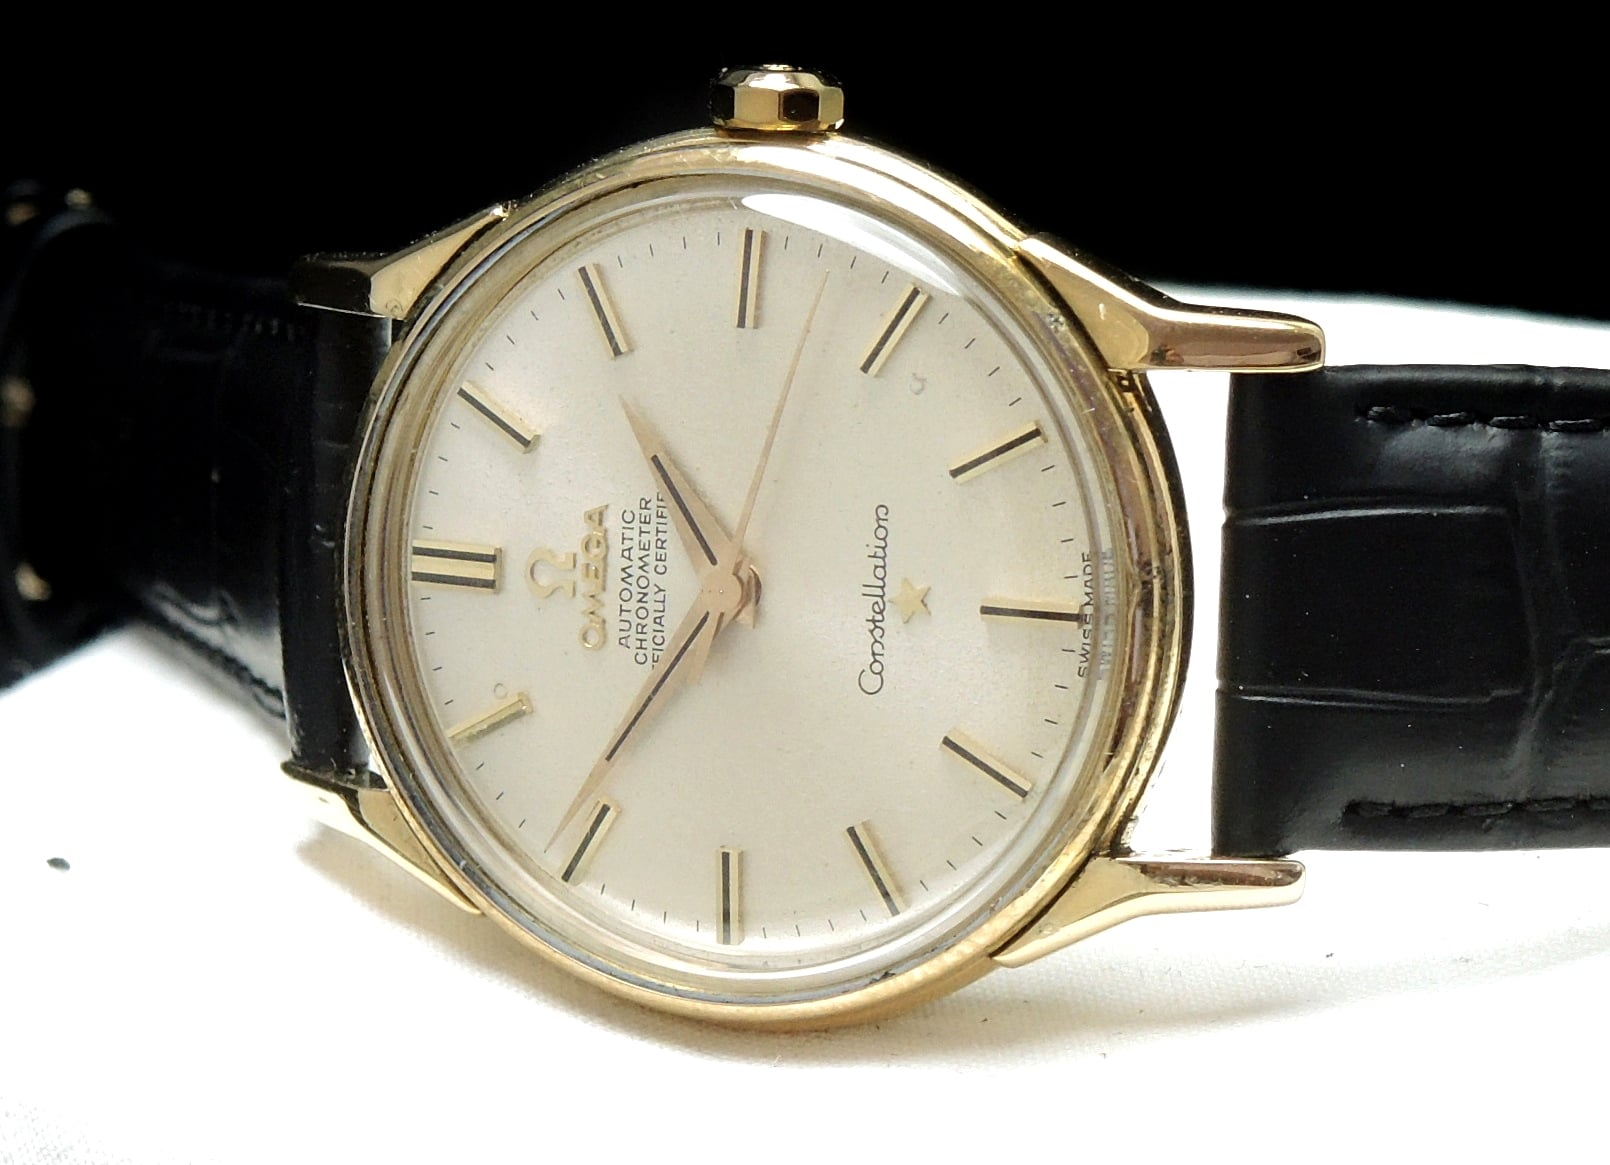 Freshly Serviced Unrefurbished Solid Gold Omega Constellation Automatic